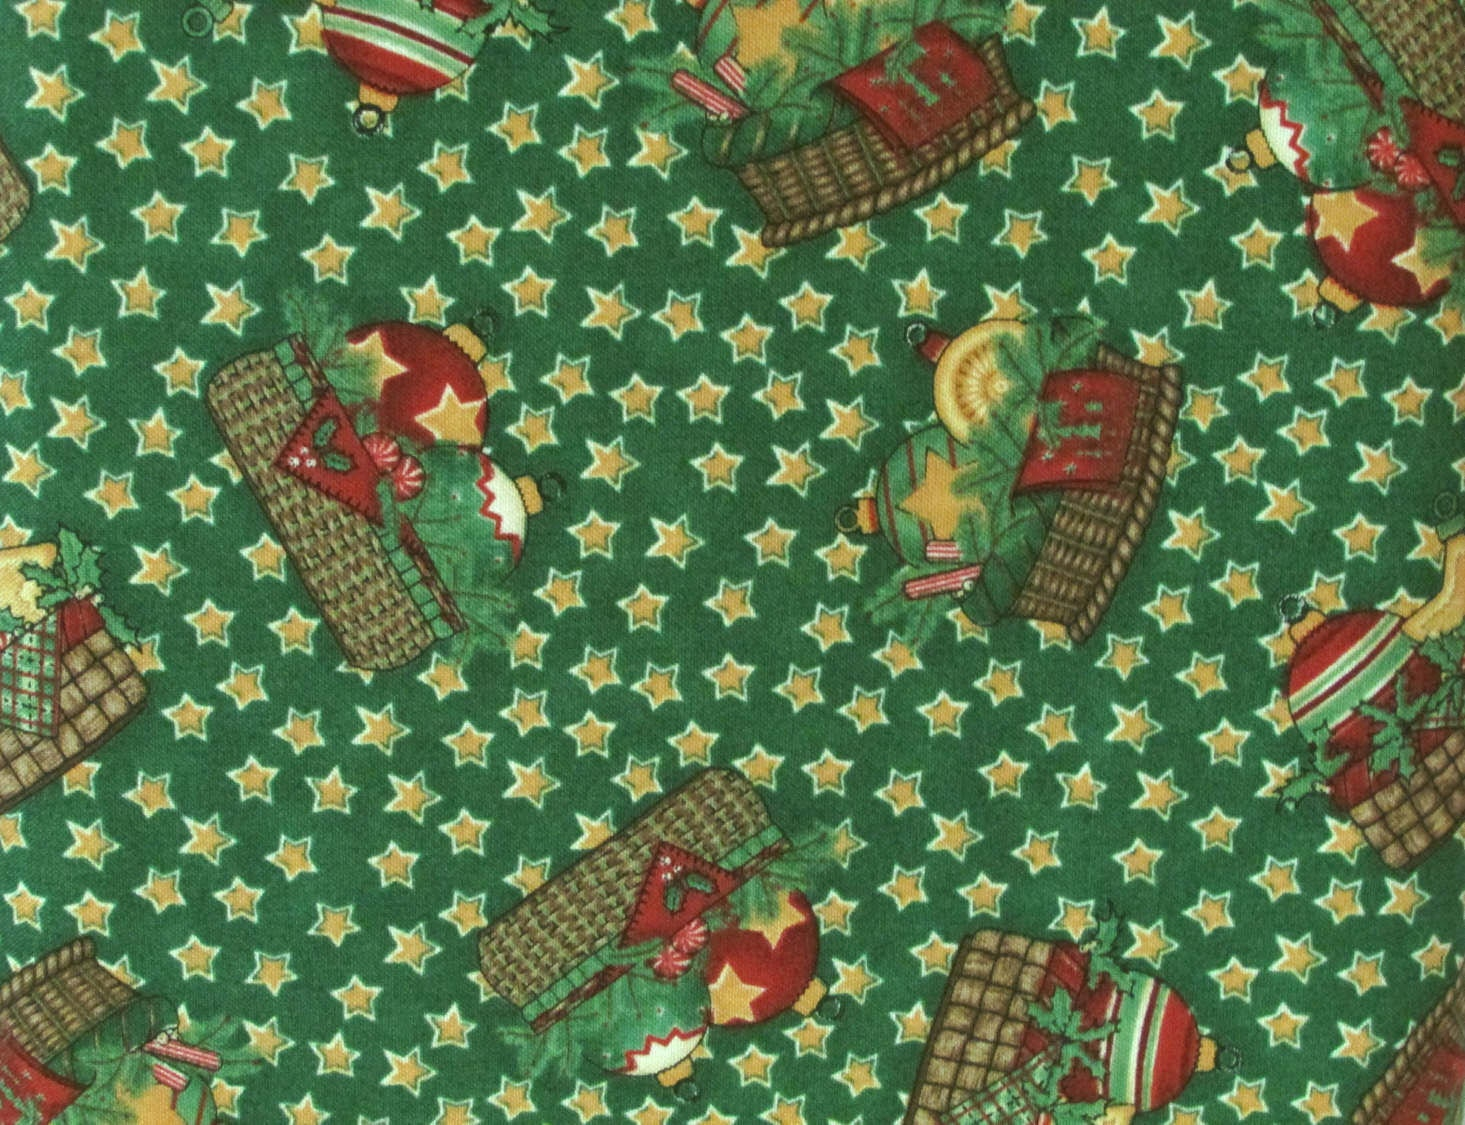 Sewing fabric cotton quilting quilting fabric sewing for Cotton sewing material